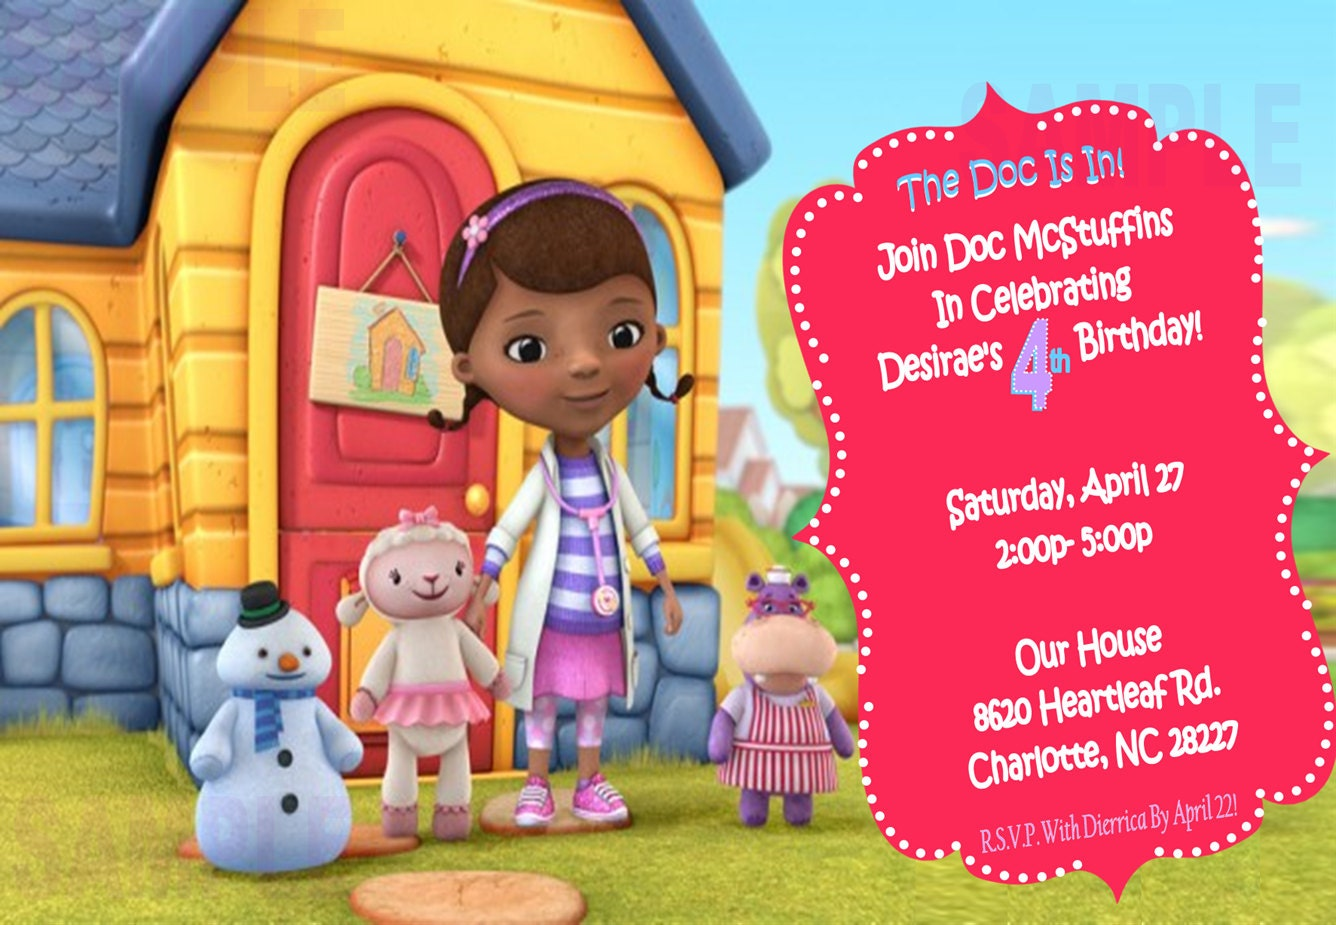 Doc Mcstuffins Invitations was nice invitations template